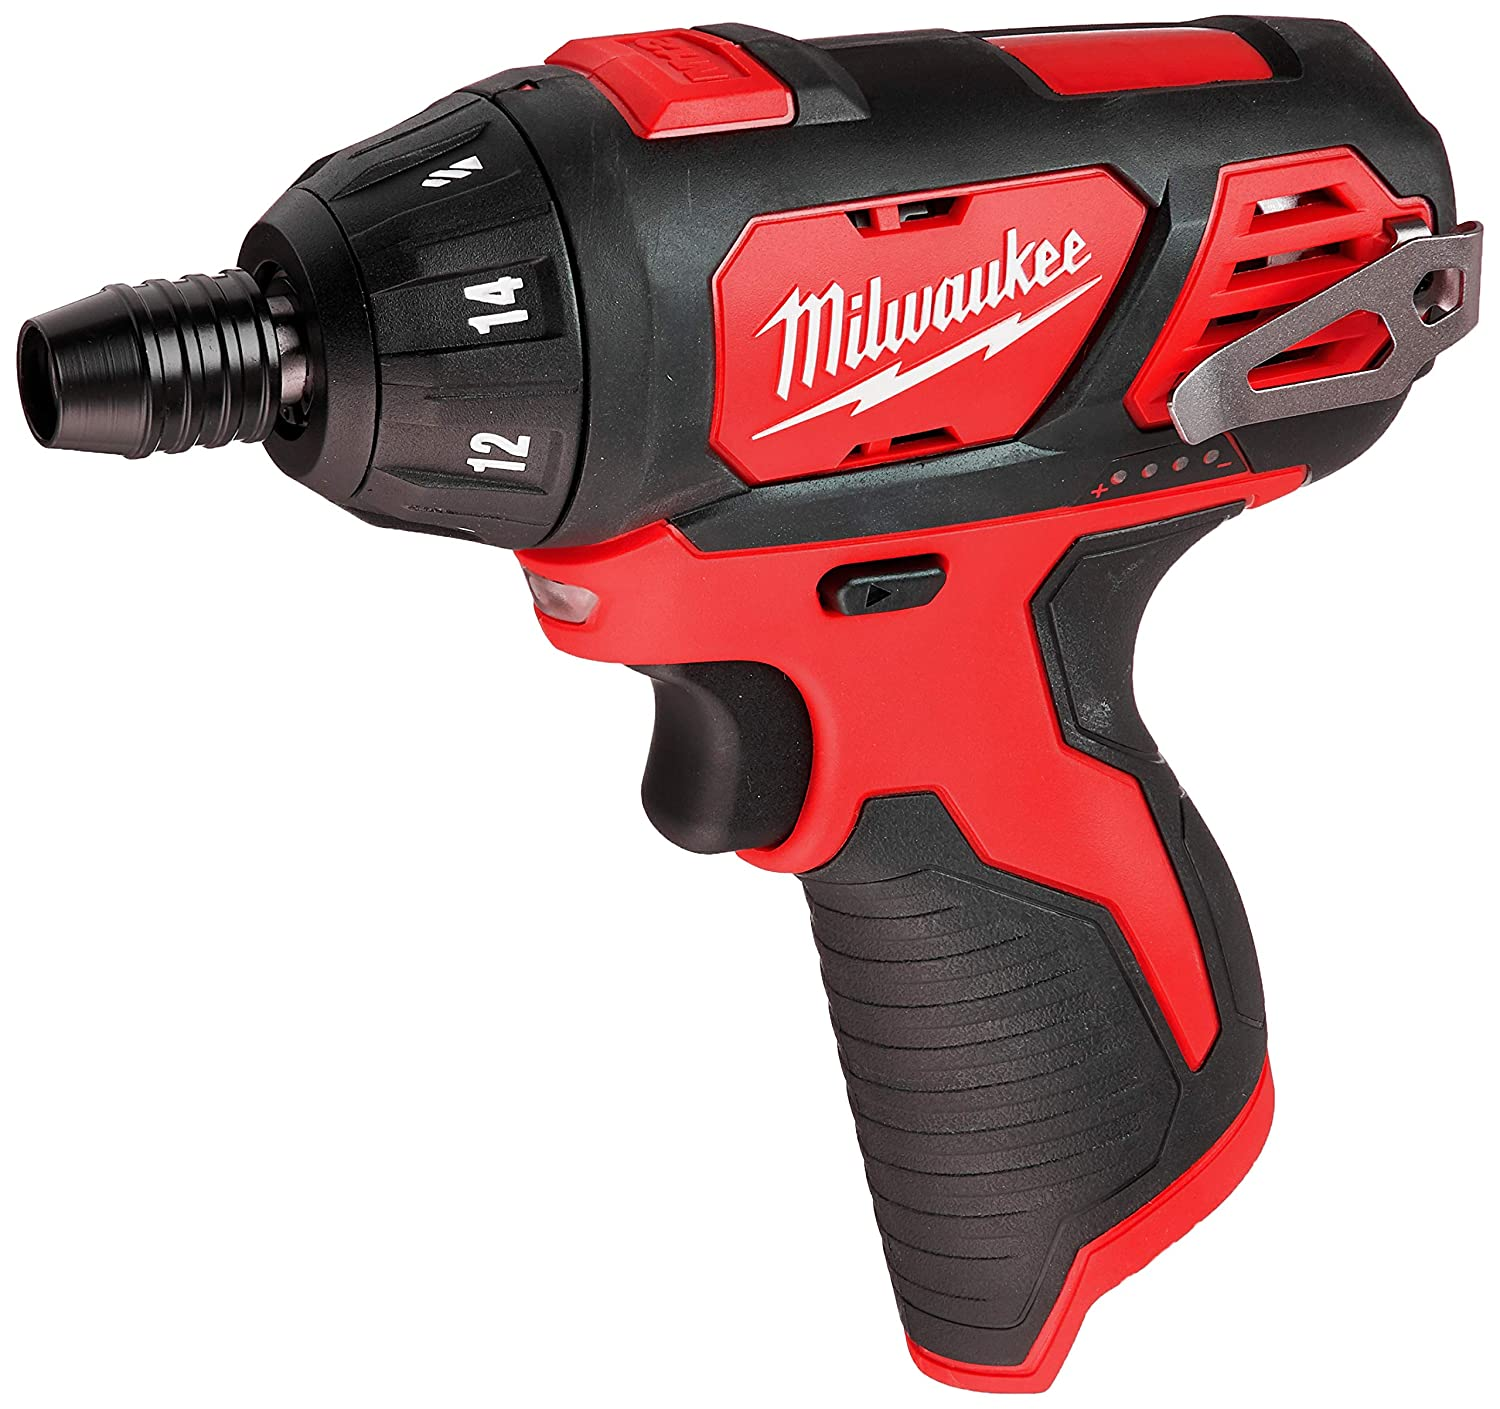 Milwaukee 2401-20 M12 12-Volt Lithium-Ion Cordless 1 4 in. Hex Screwdriver Tool-Only